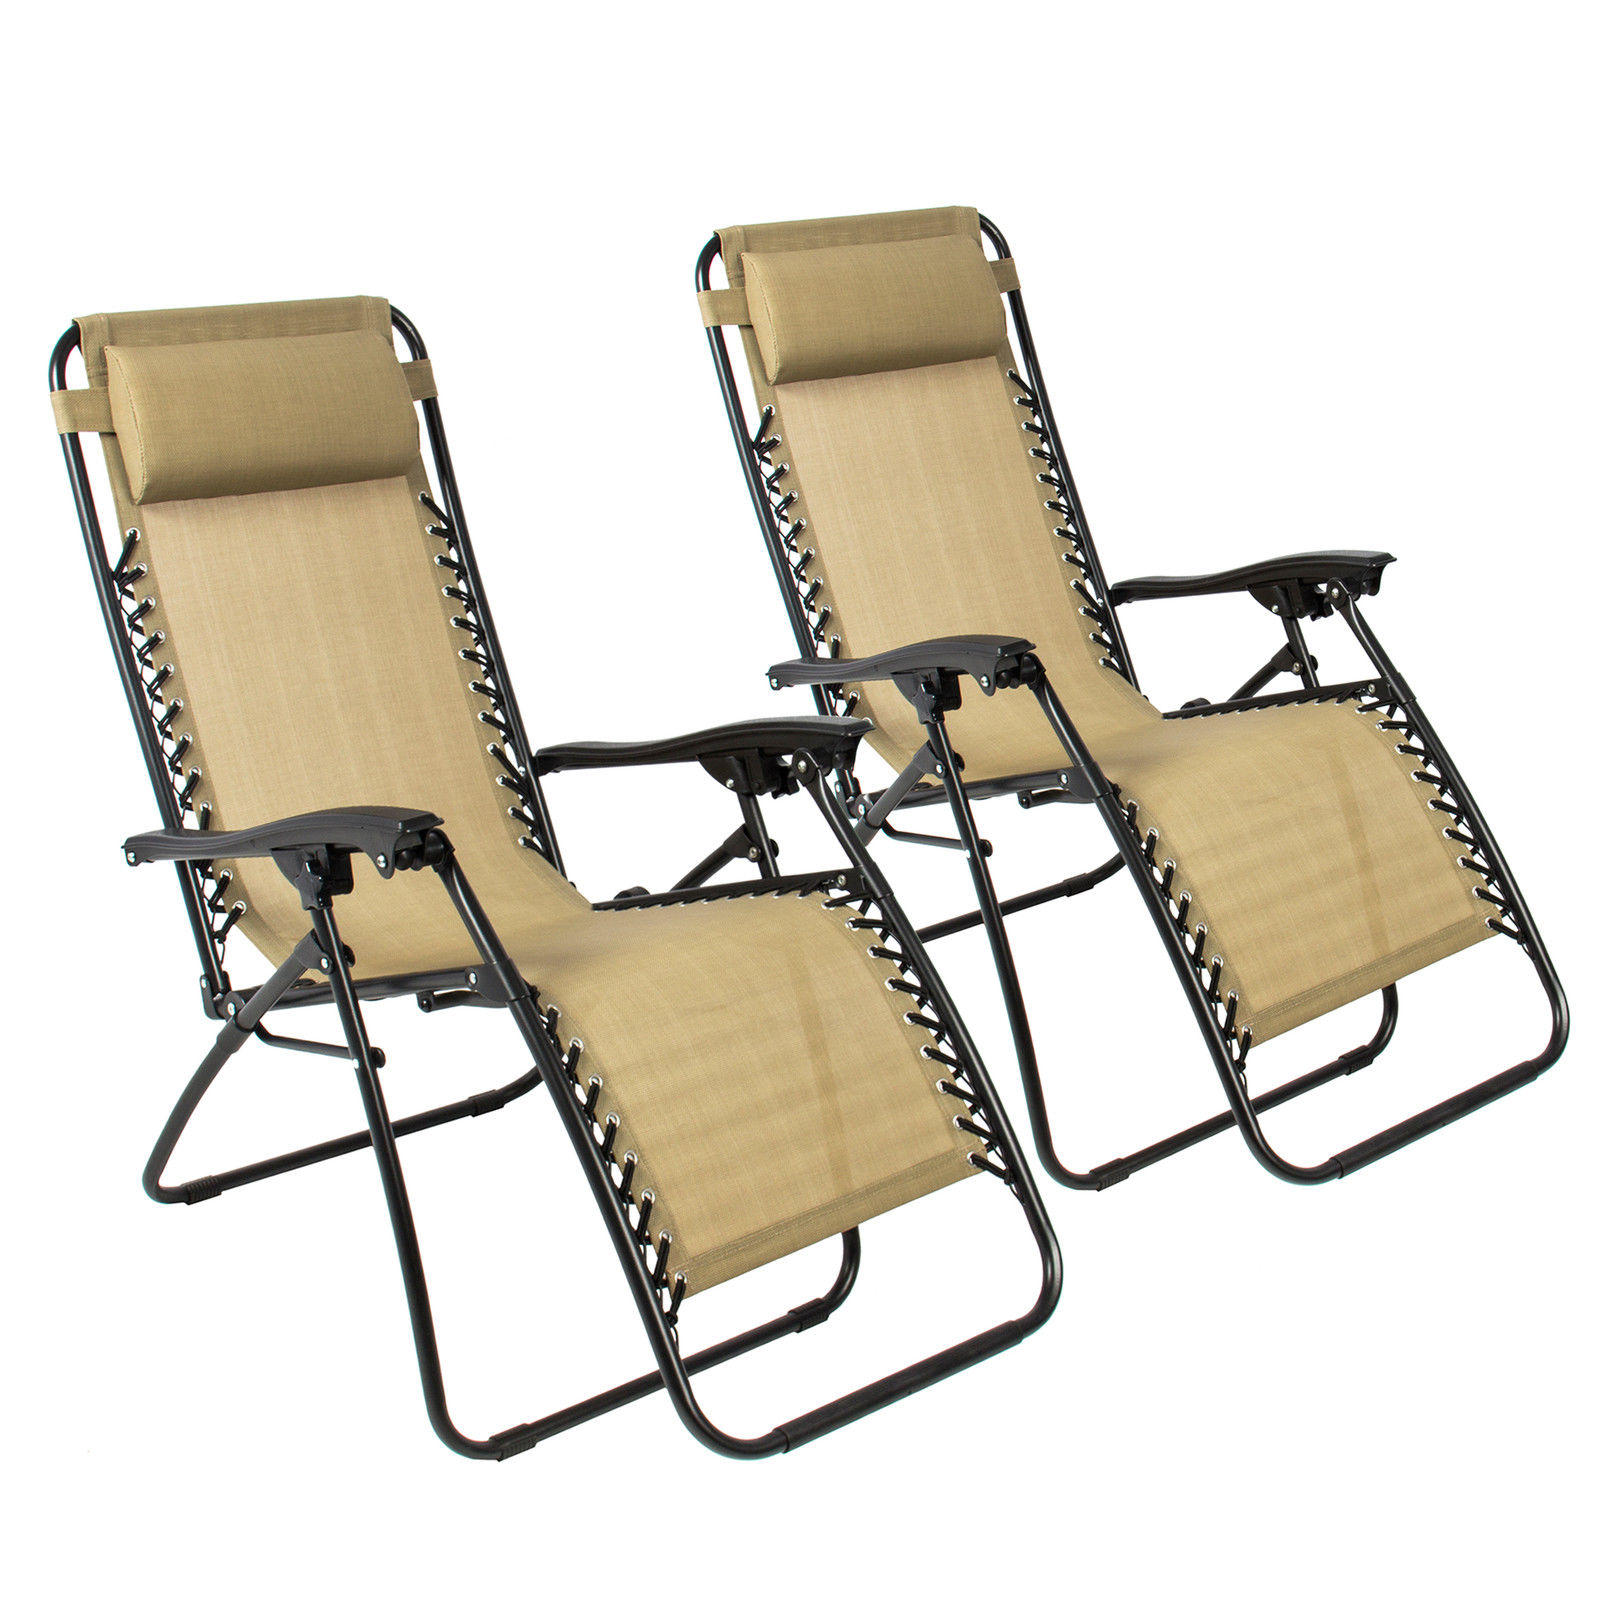 two Zero Gravity Recliner Outdoor Patio Chairs